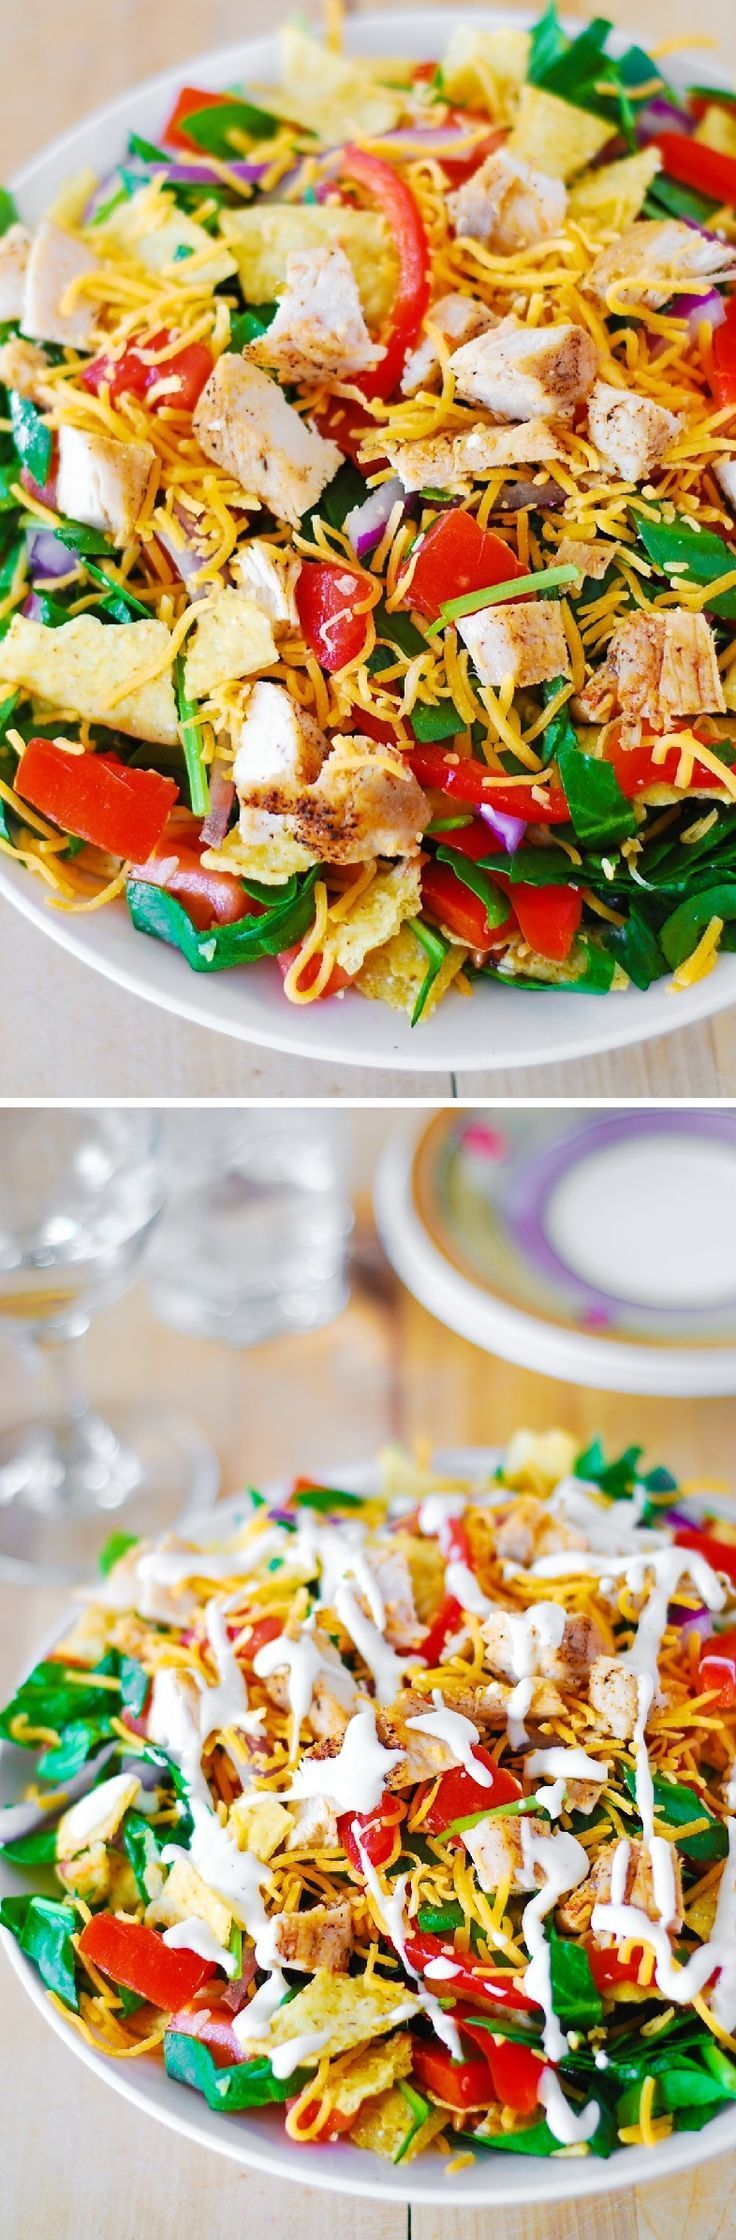 Mexican chicken taco salad. With healthier Greek Yogurt based dressing. Or use Ranch dressing. #gluten_free